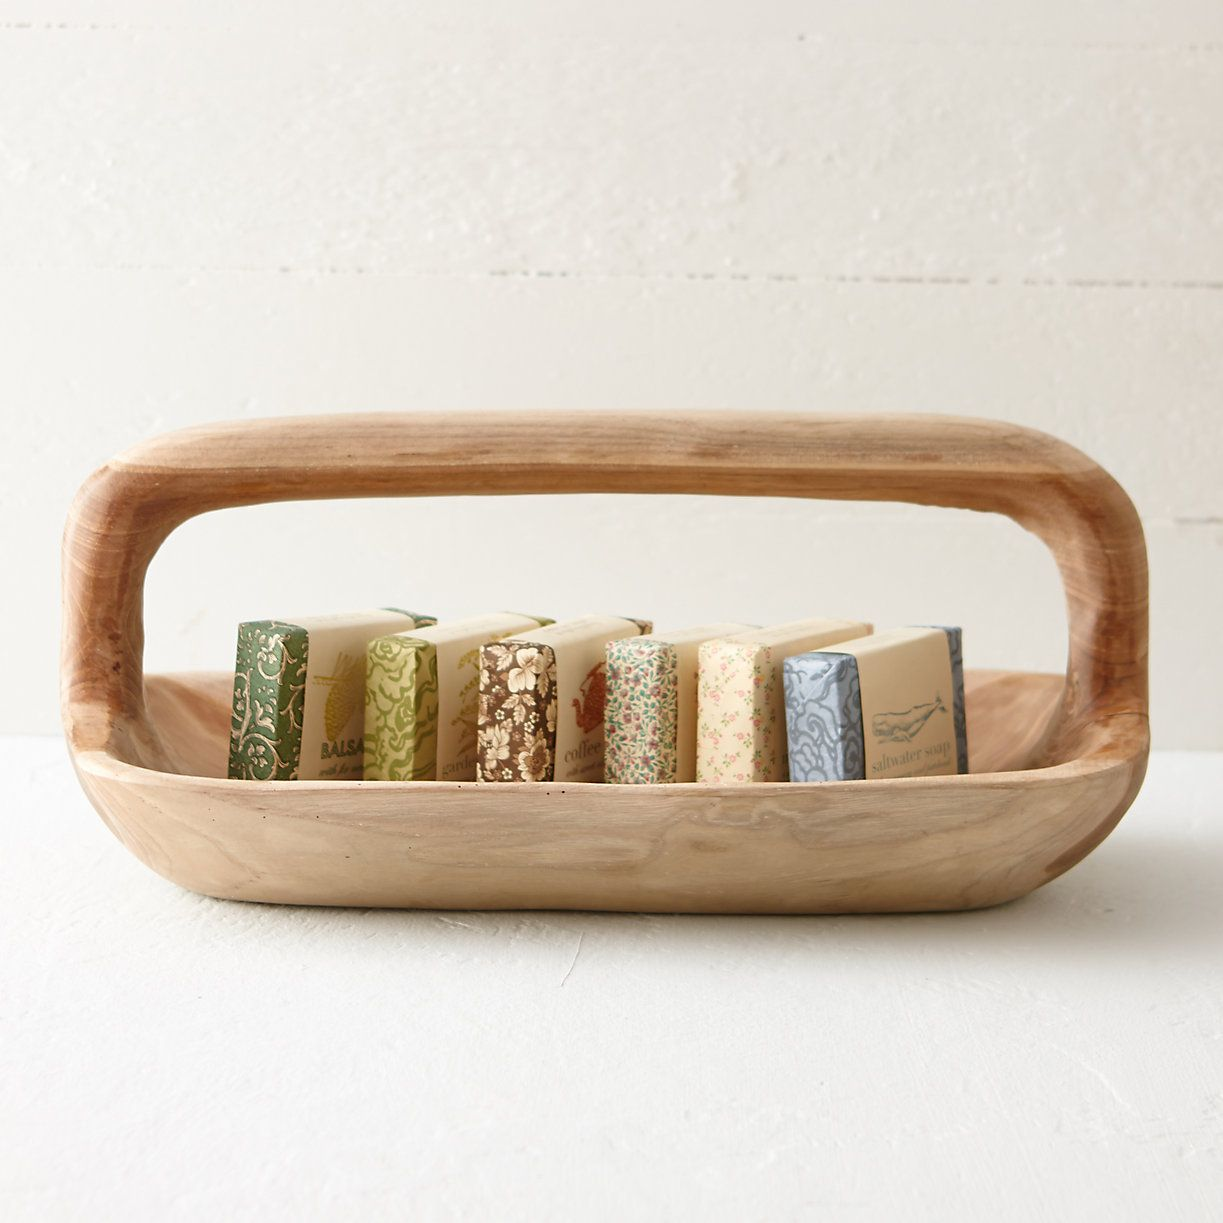 Teak Bath Caddy | Bath caddy, Teak and Bath